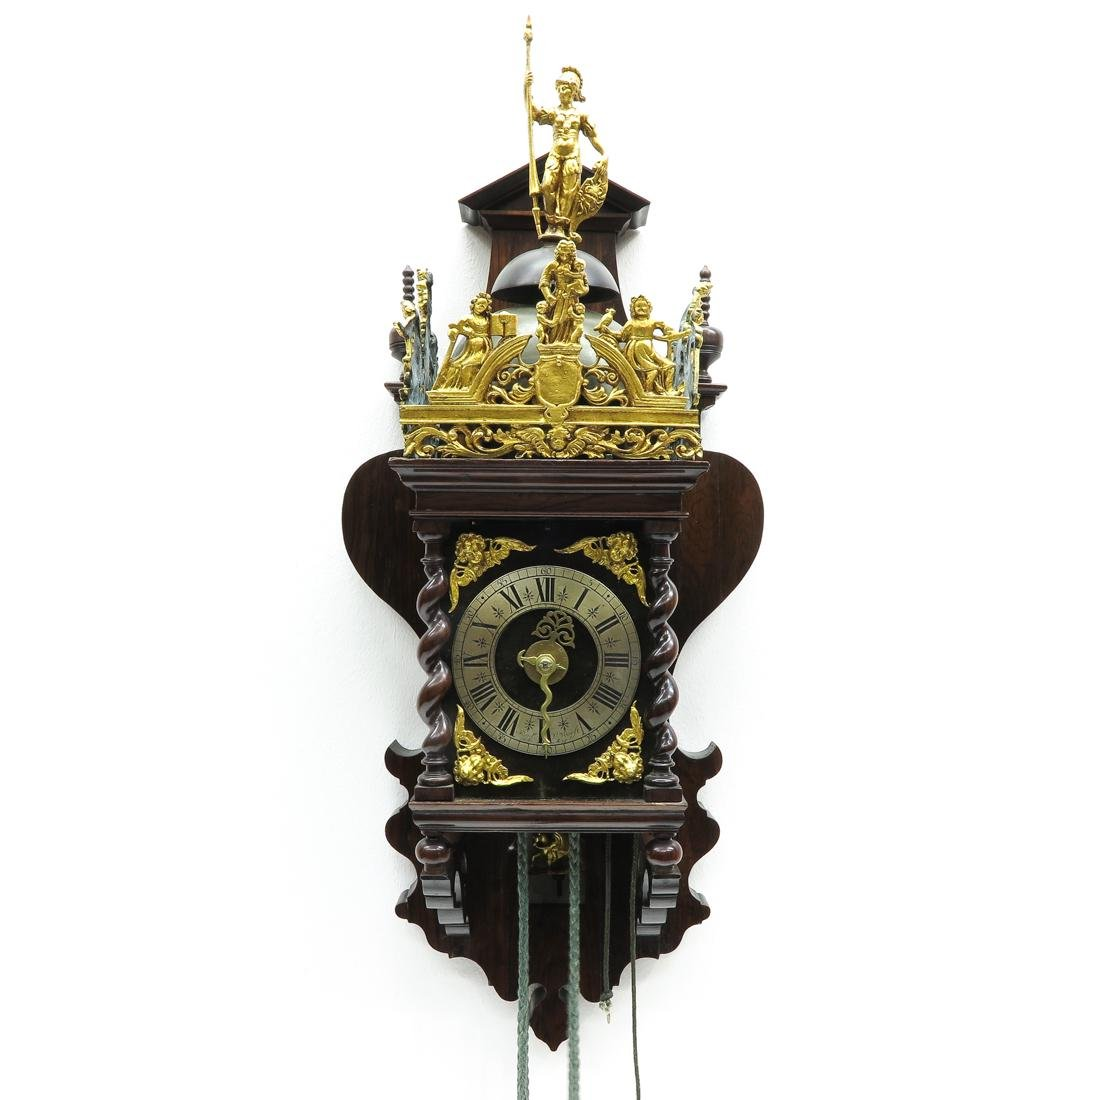 Signed Dutch Wall Clock or Zaanse Clock Circa 1740